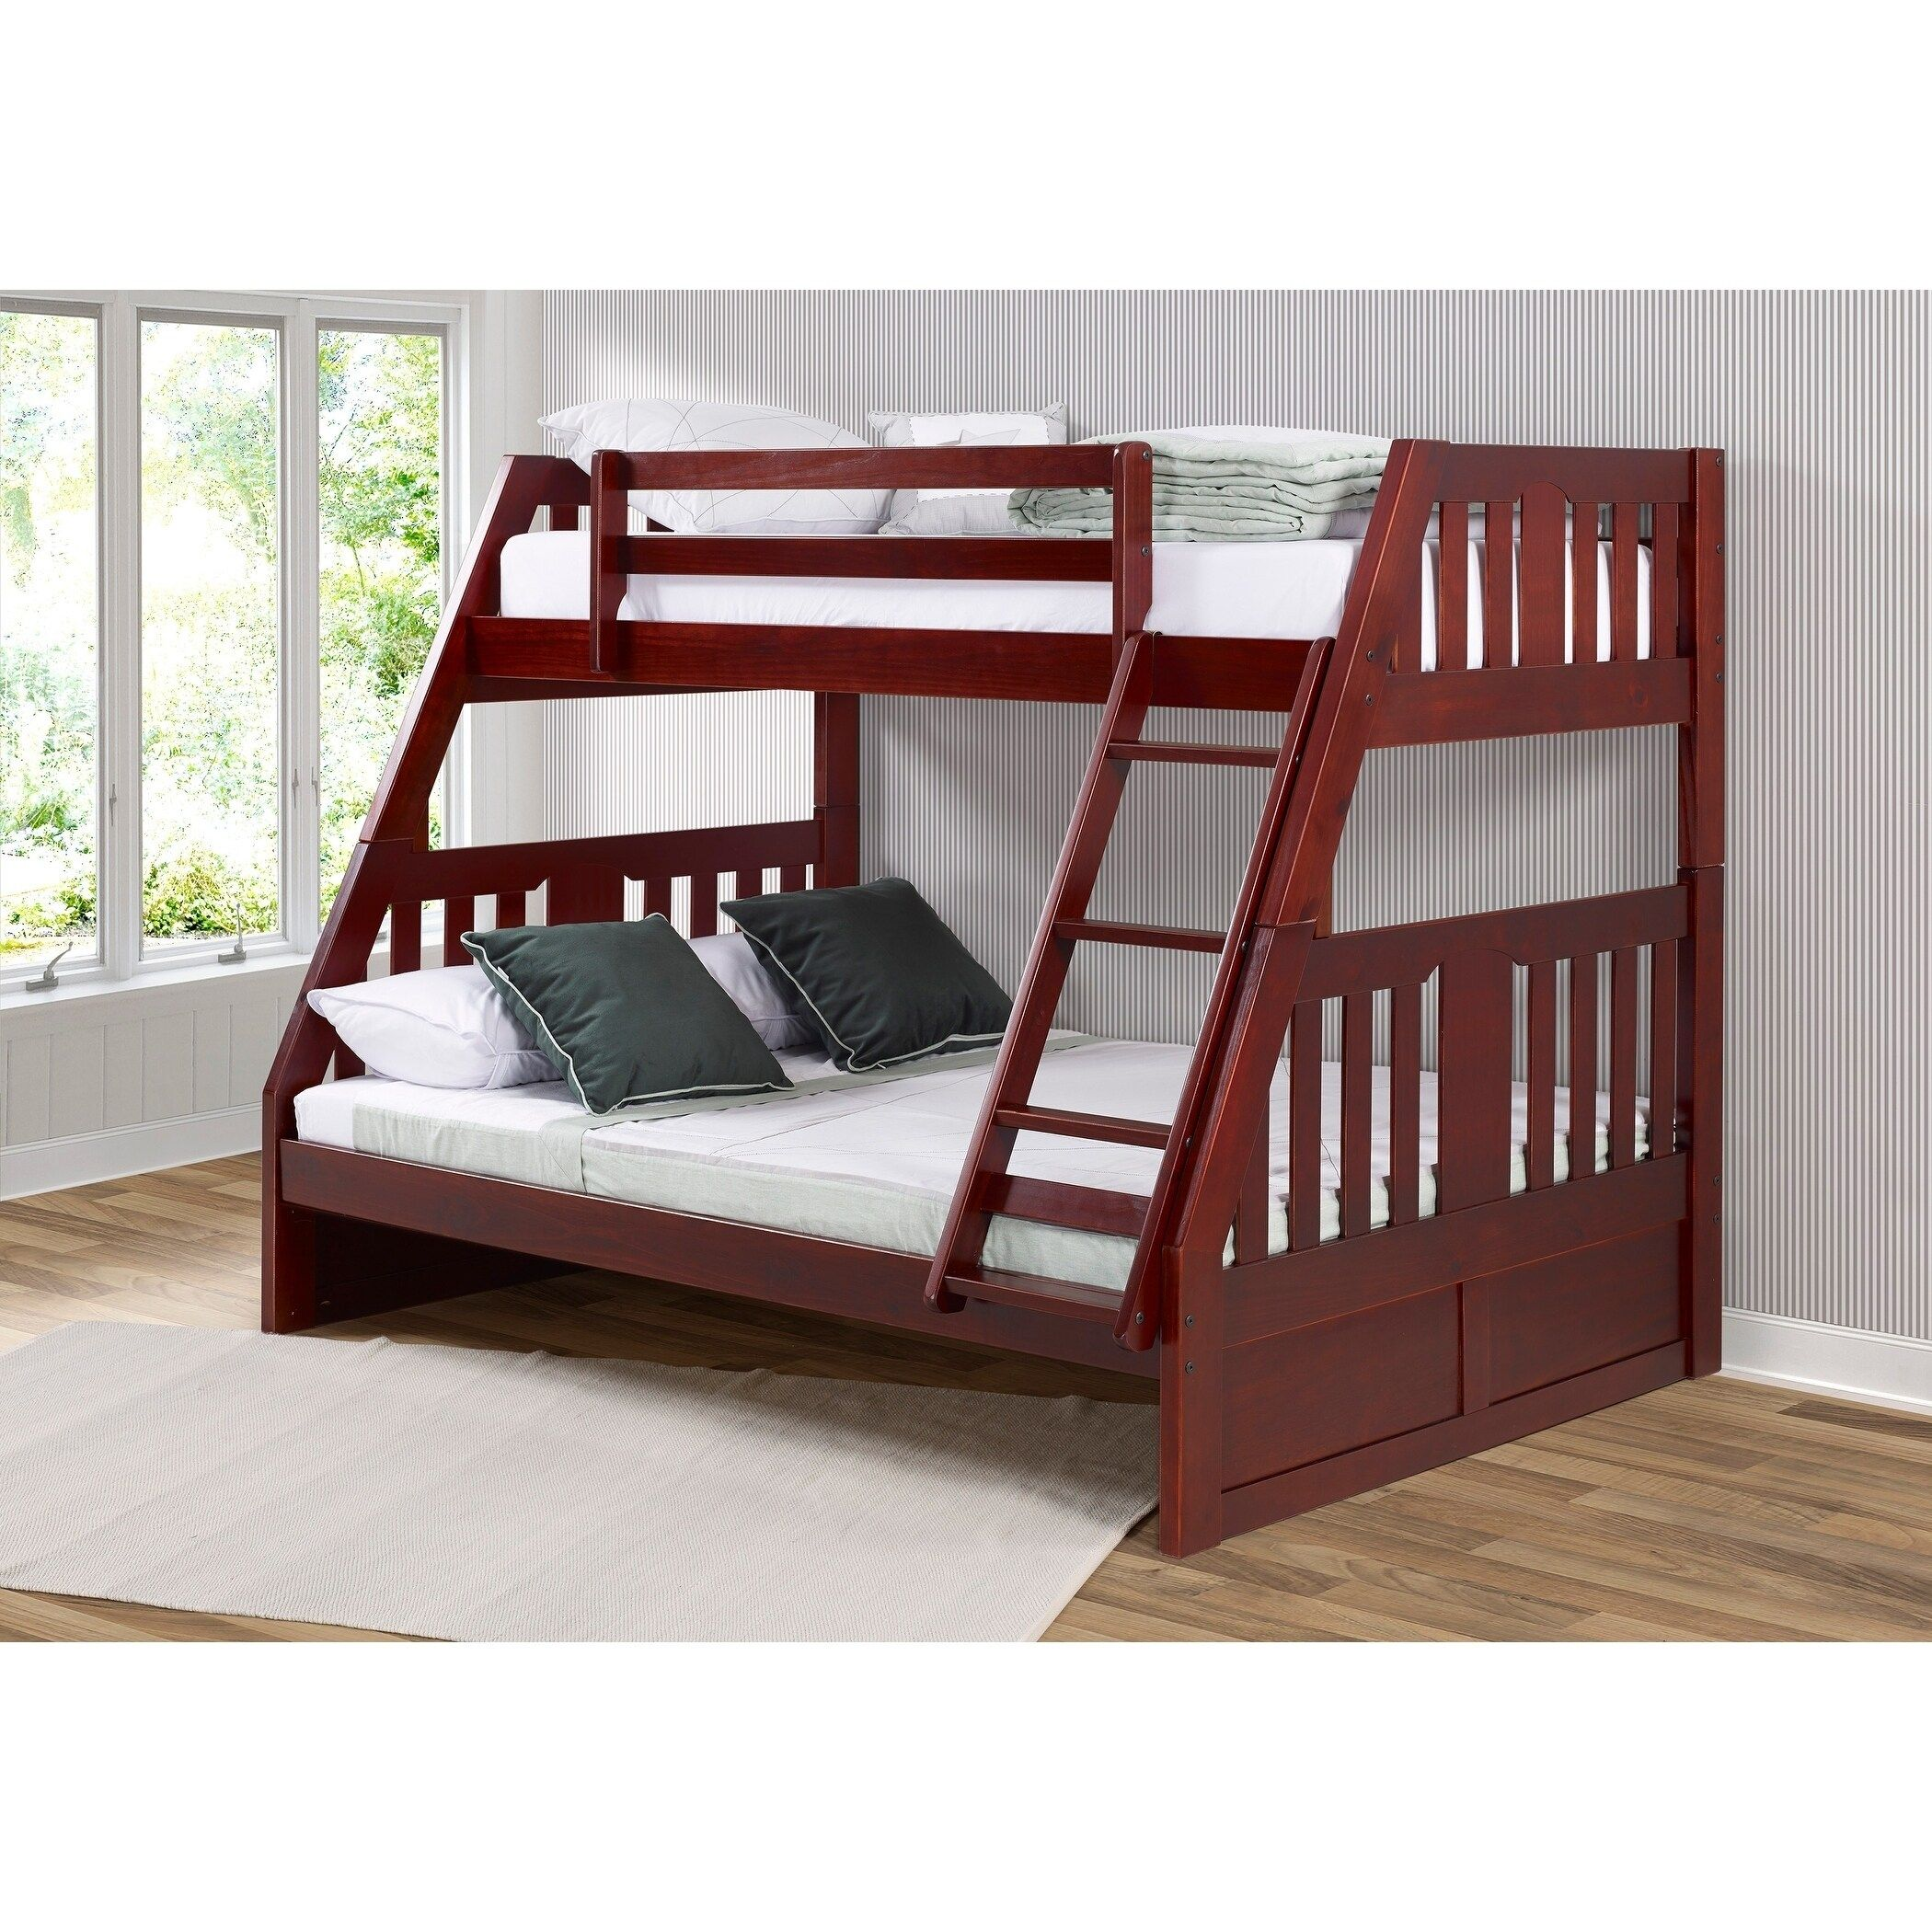 donco kids beds on Overstock Com Online Shopping Bedding Furniture Electronics Jewelry Clothing More Bunk Beds With Drawers Bunk Beds Full Bunk Beds